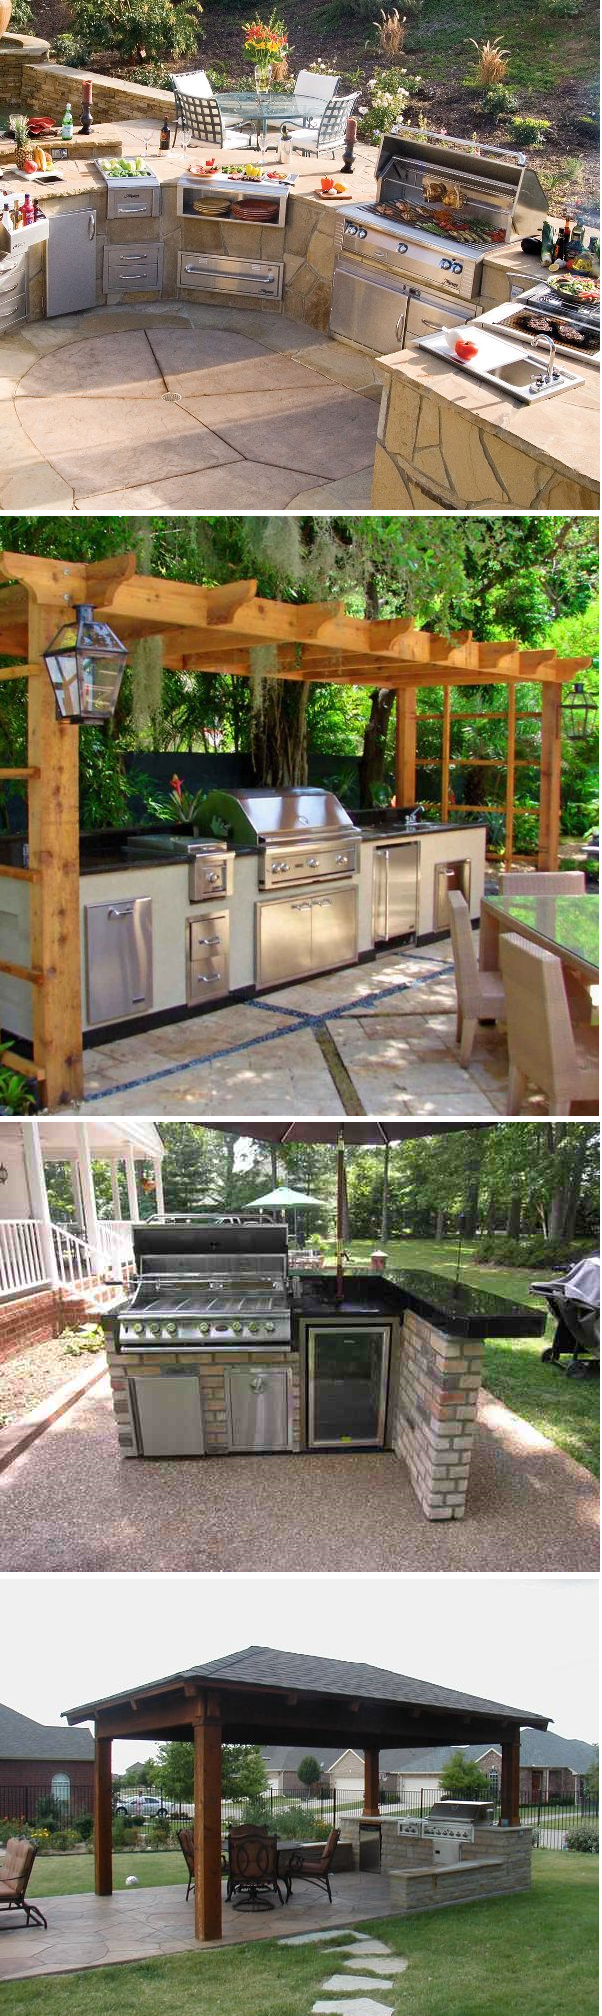 how to build a portable kitchen for your backyard http